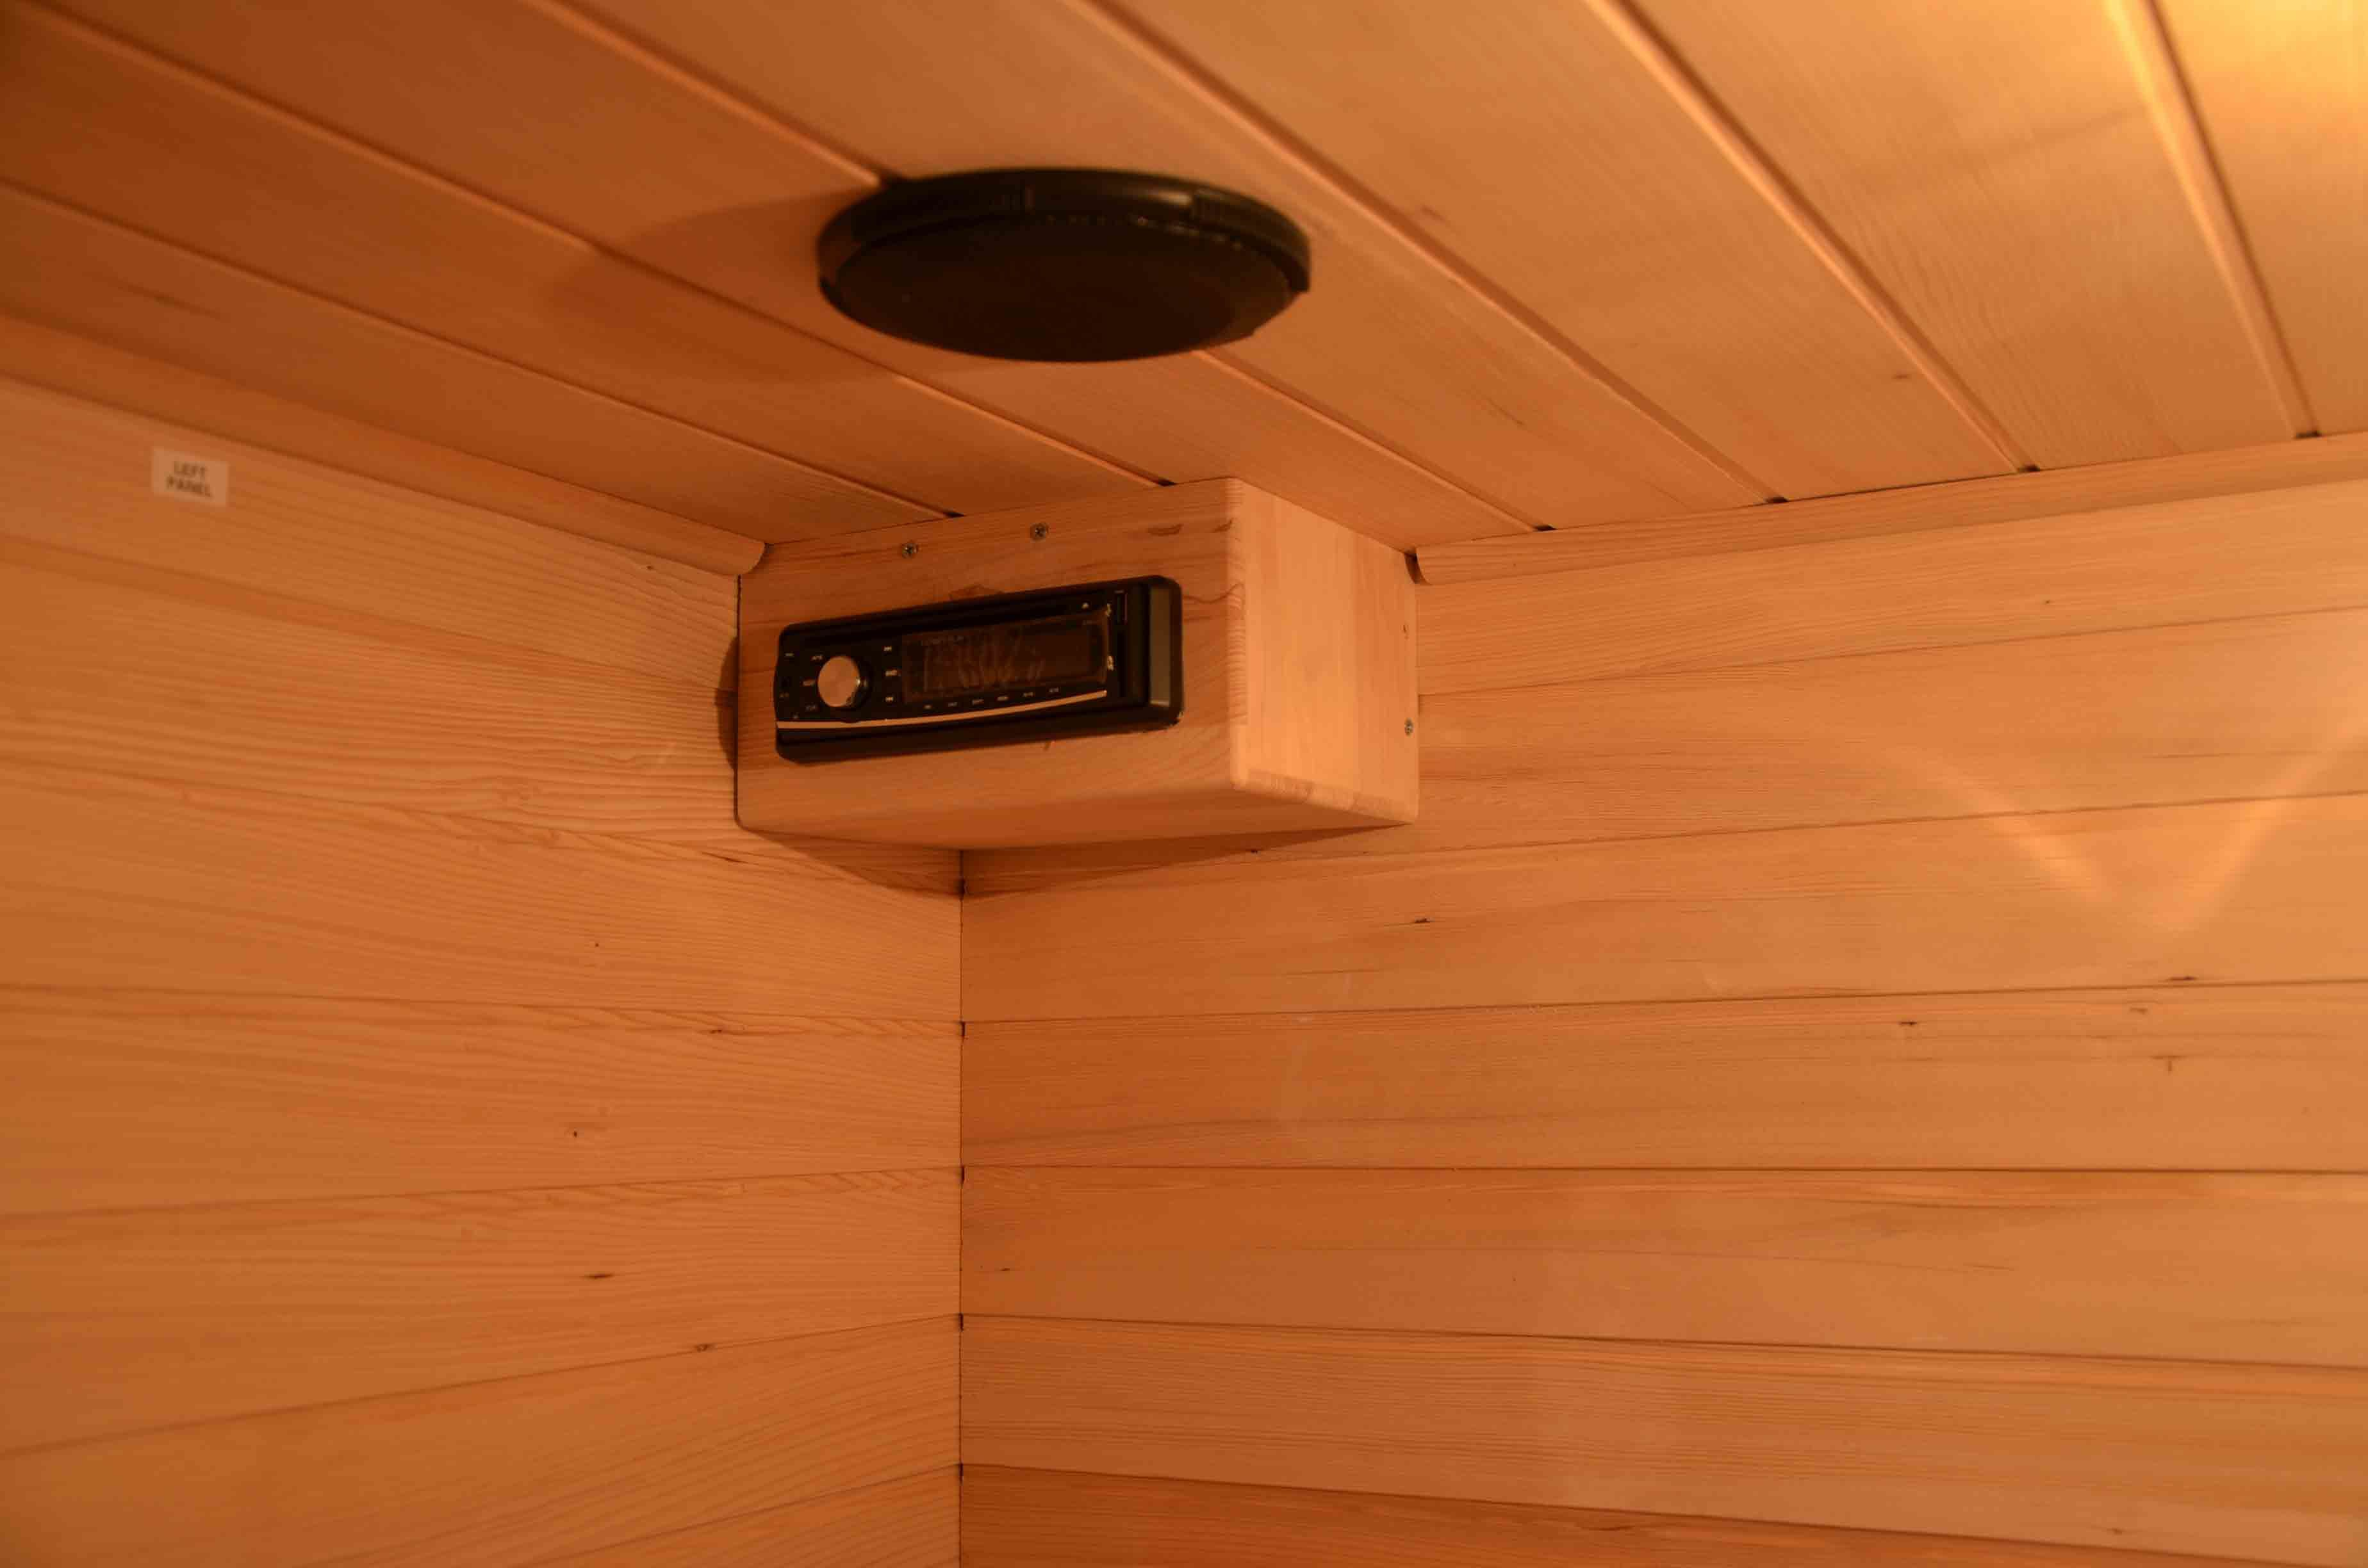 2016 Far Infrared Sauna Room Dry For 2 People SEK A2